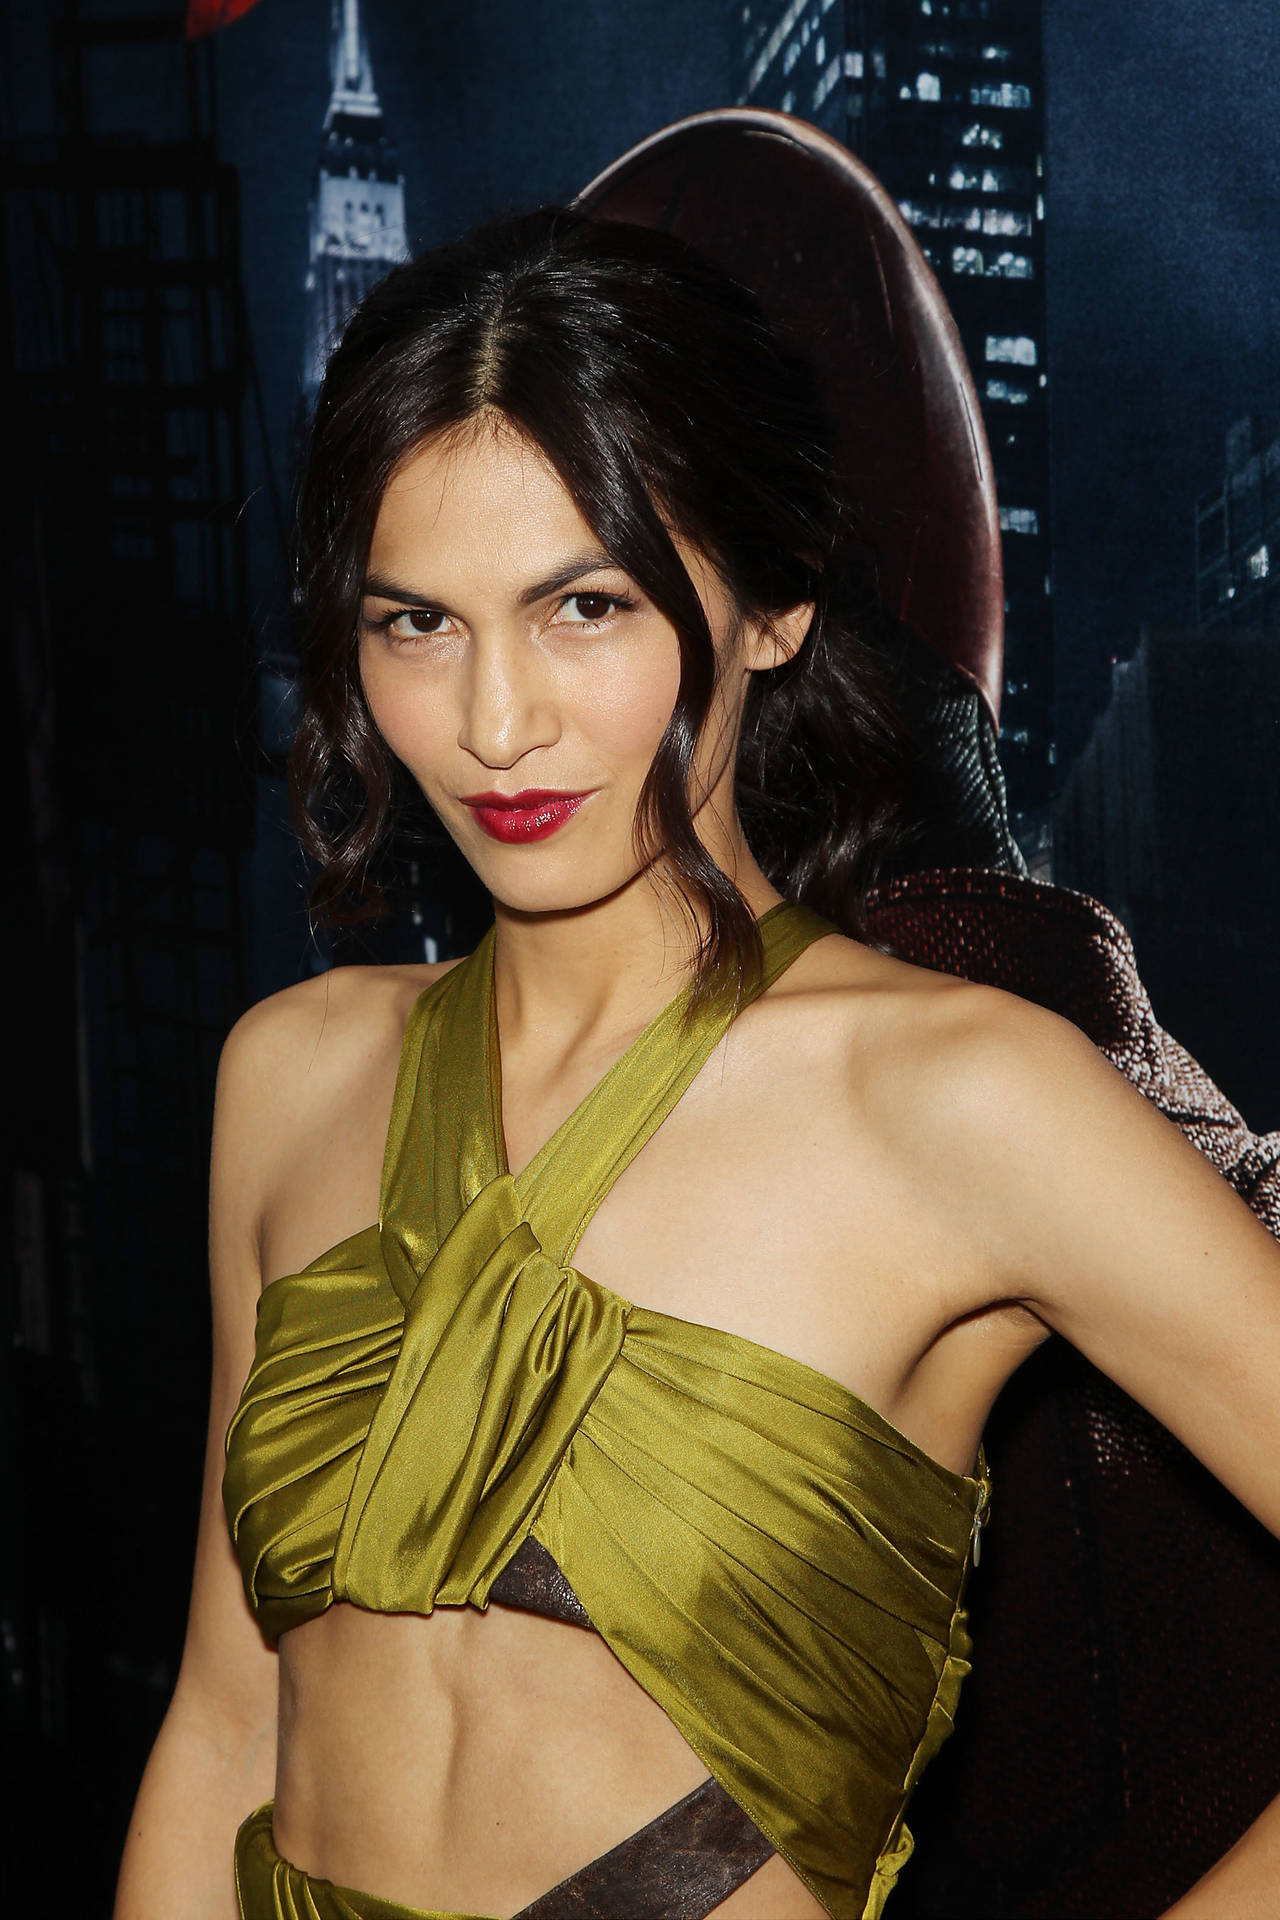 1280x1920 - Elodie Yung Wallpapers 29